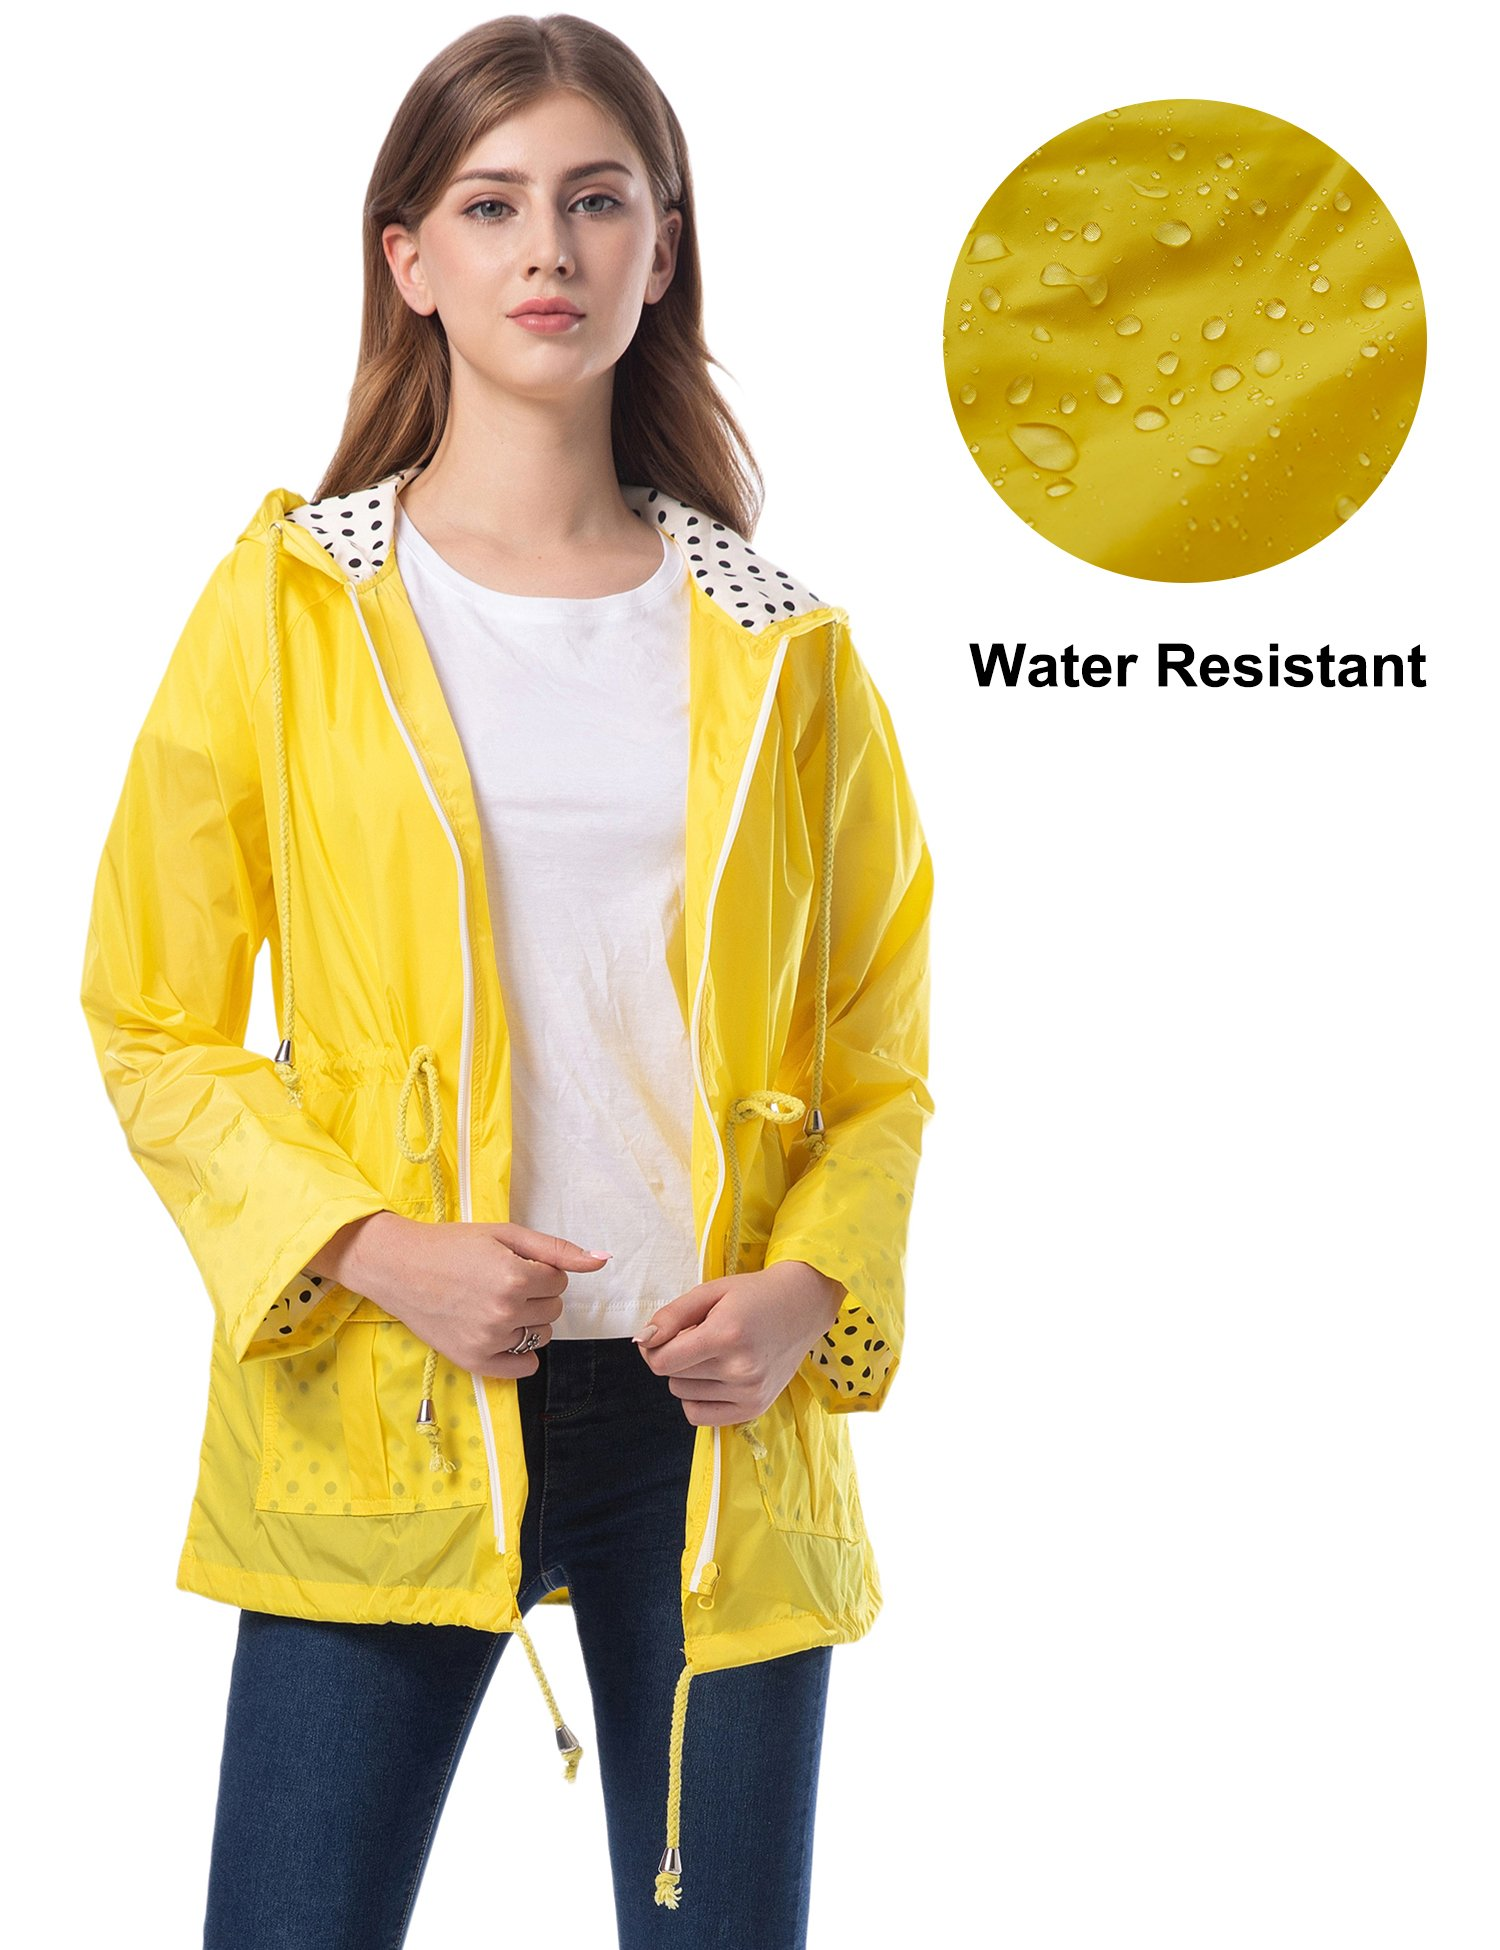 Romanstii Hooded Rain Jacket Women Outdoor Lightweight Active Wear Windproof Yellow L